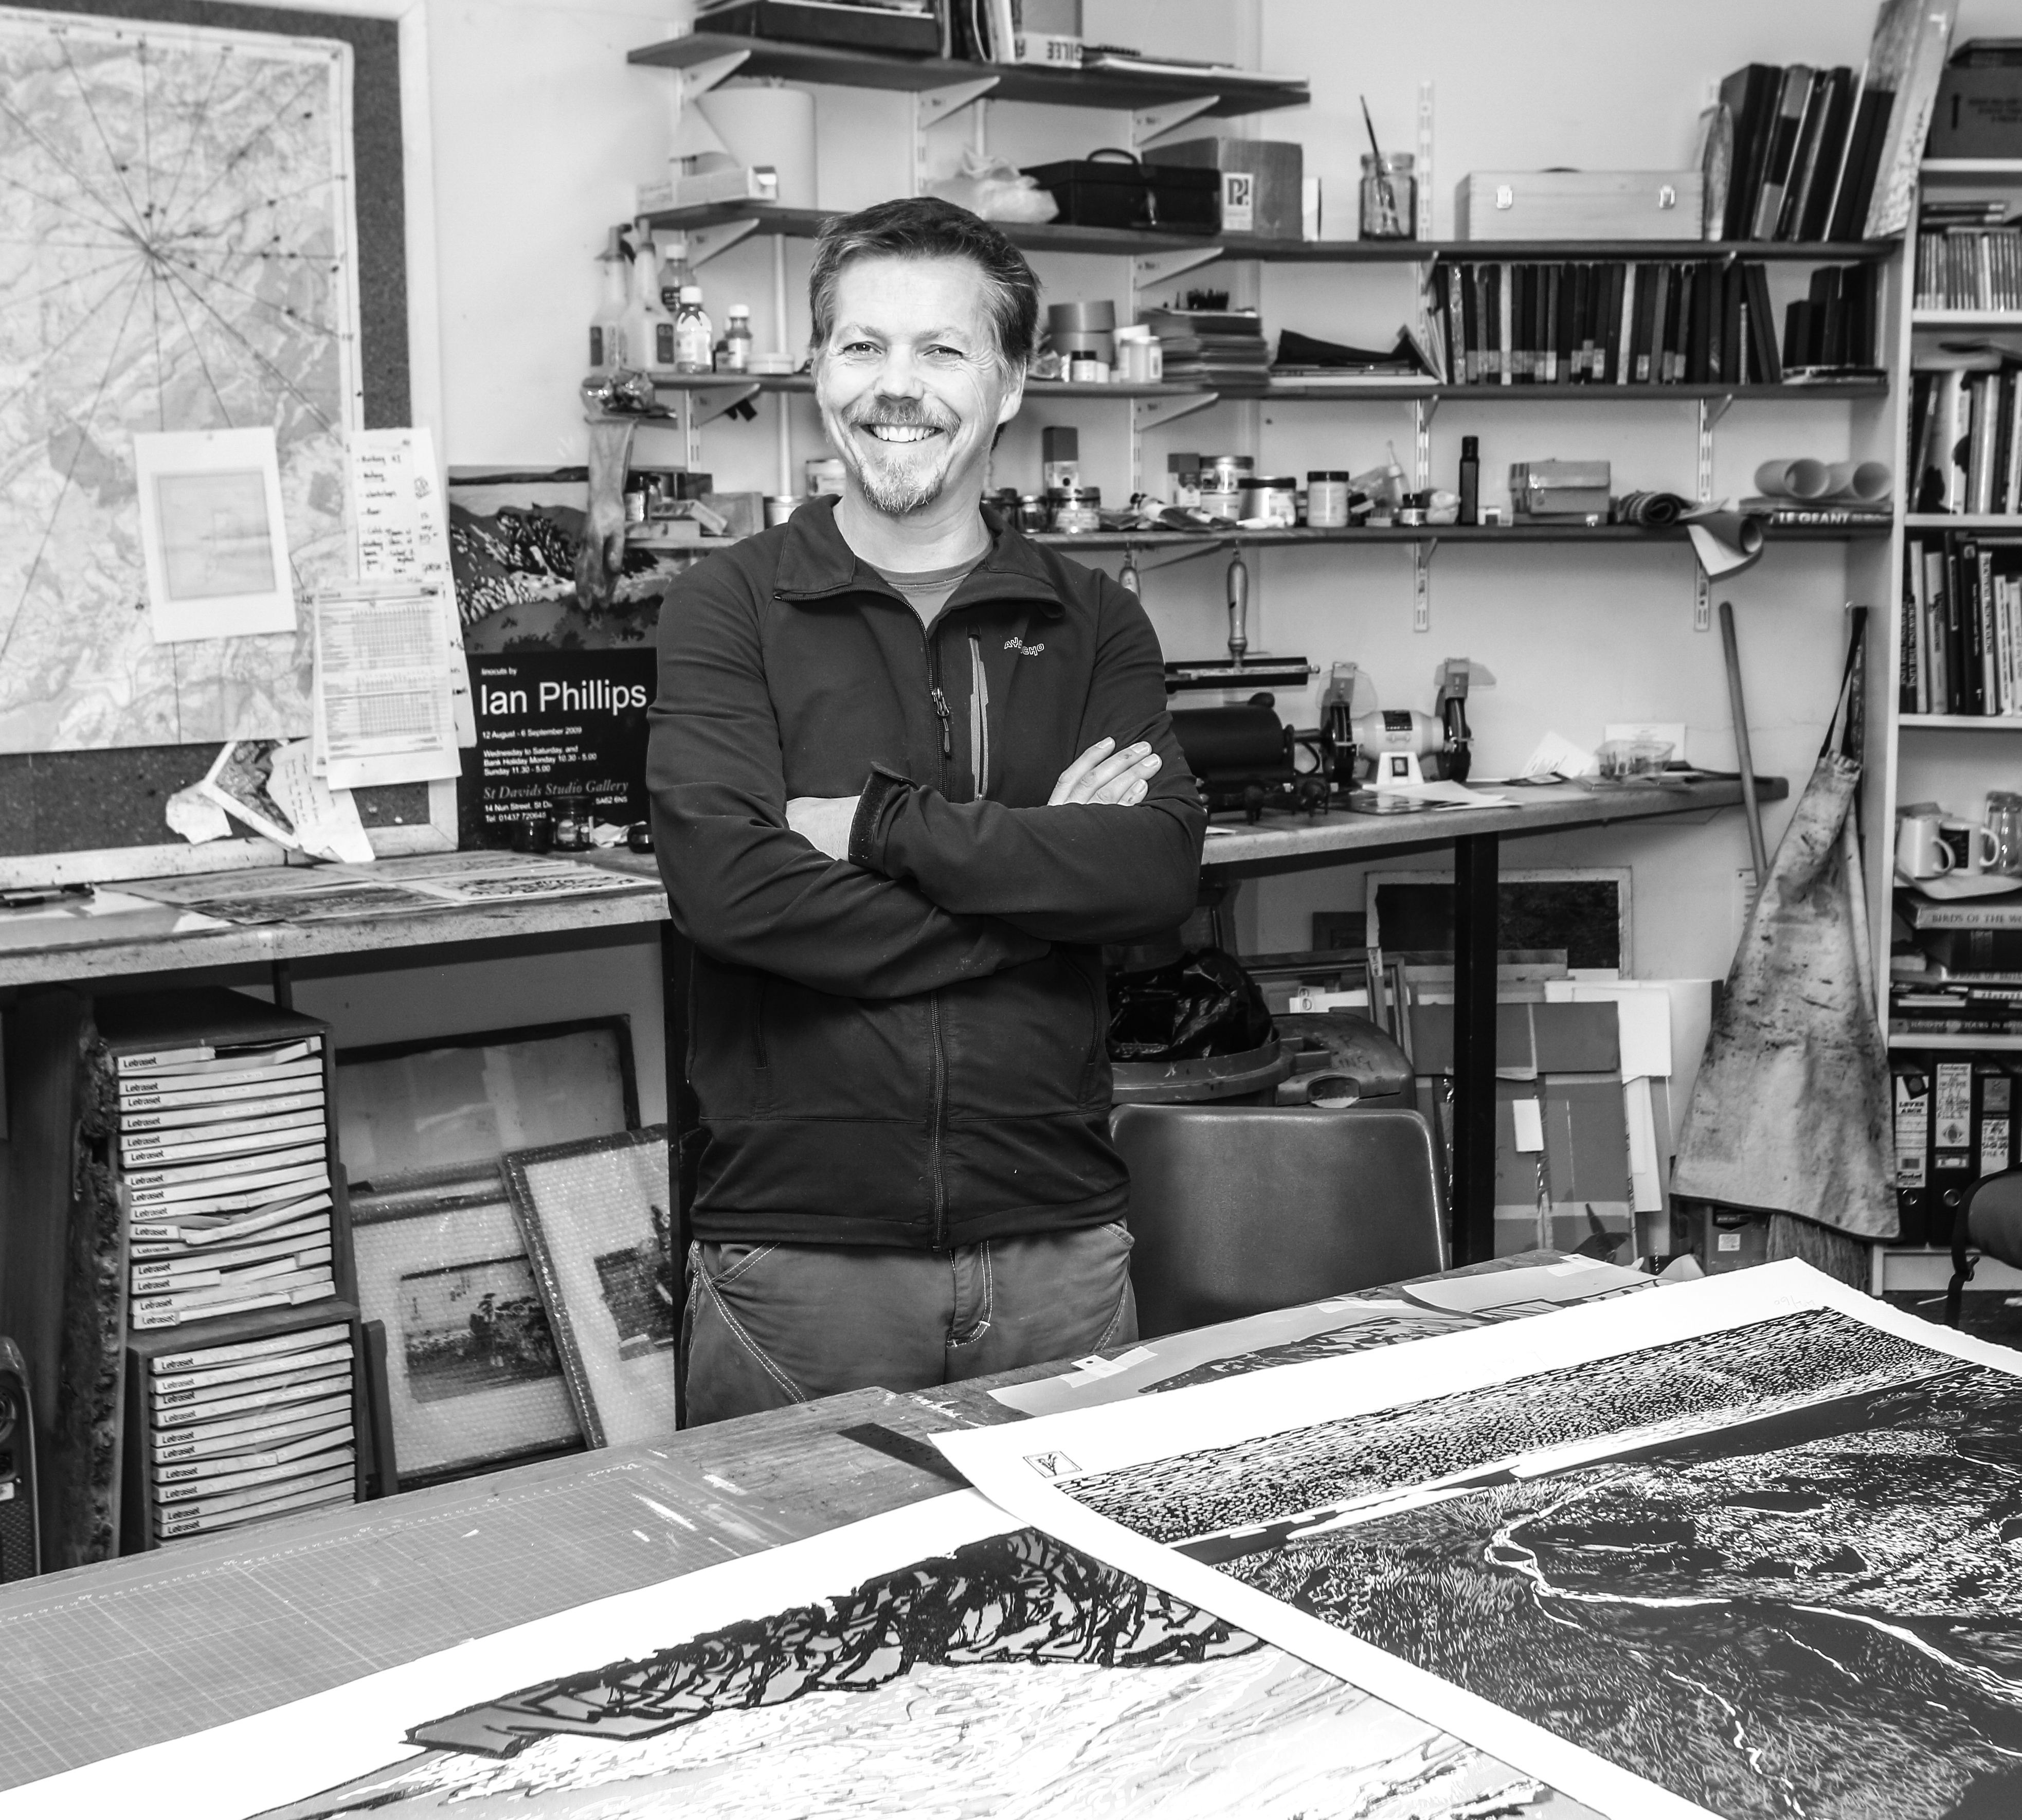 Ian Phillips in his studio at Aberystwyth